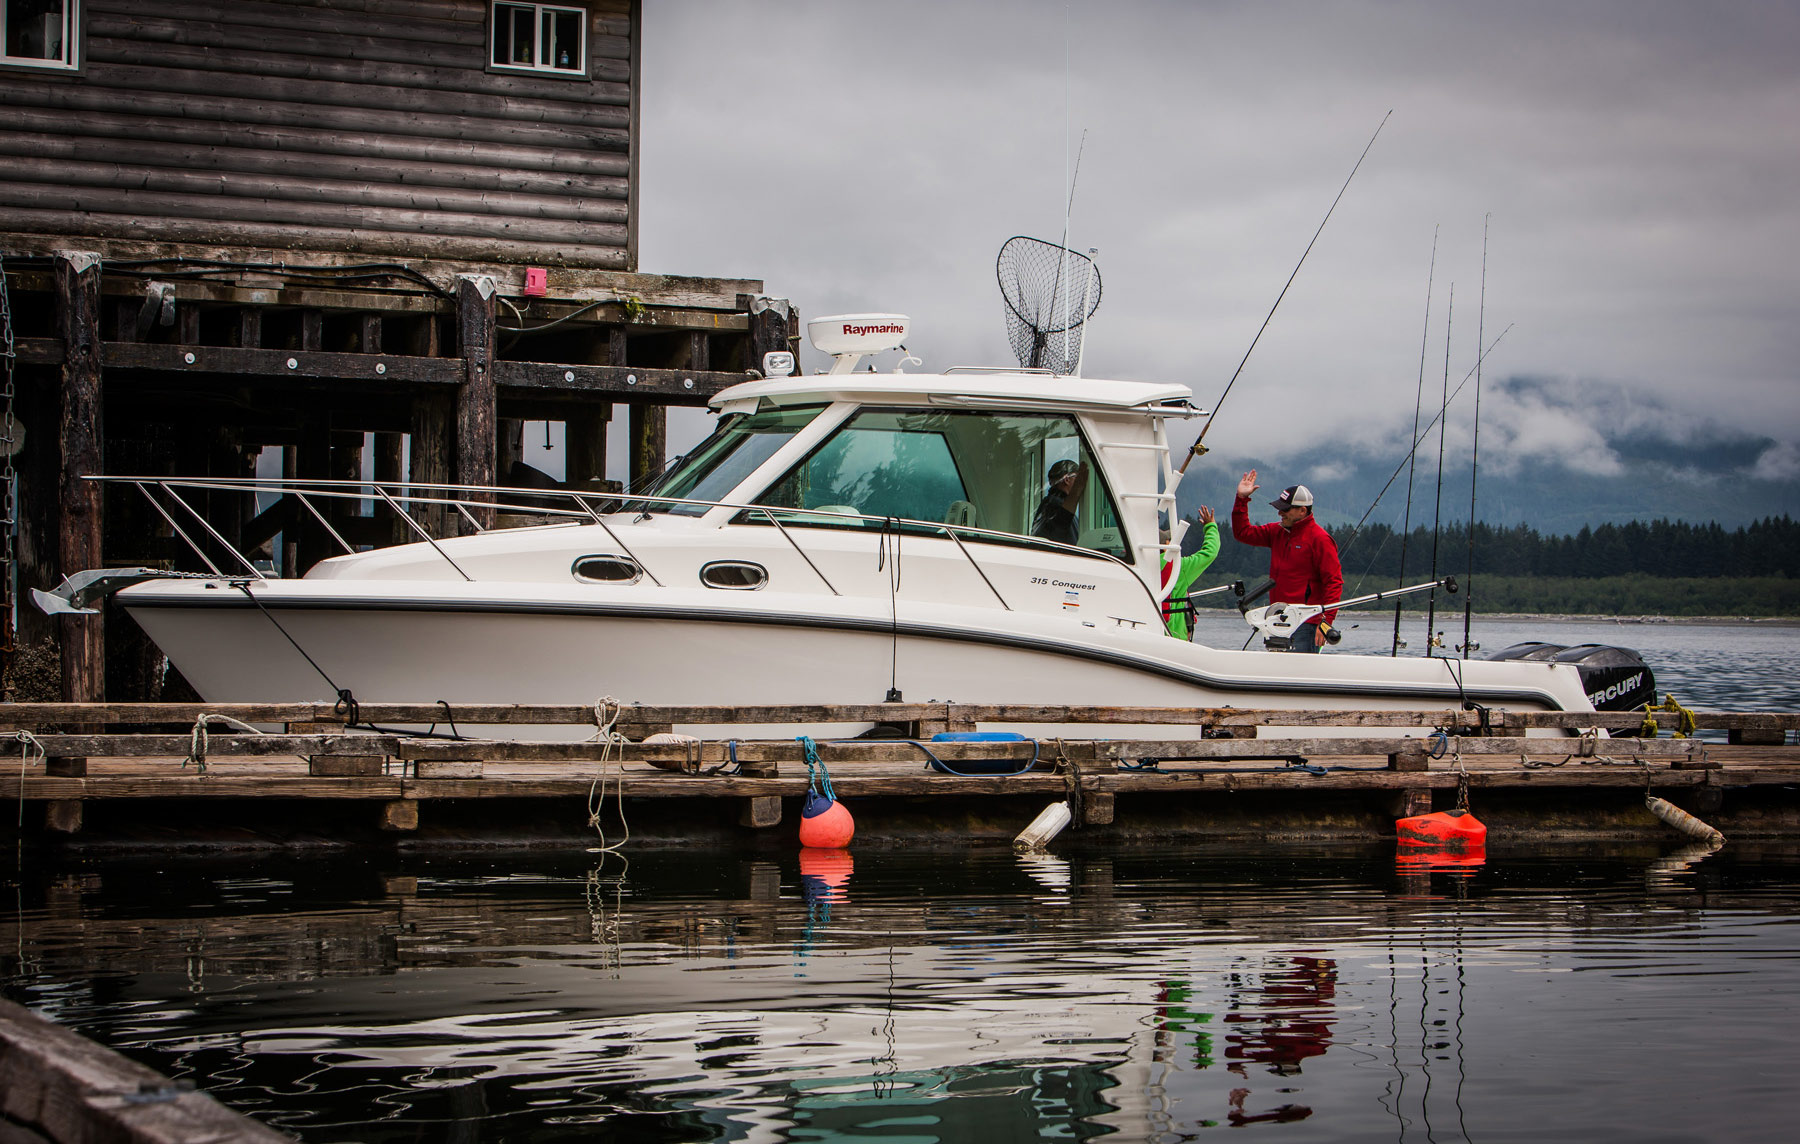 Canada Marine Boating Photographer Steinberger